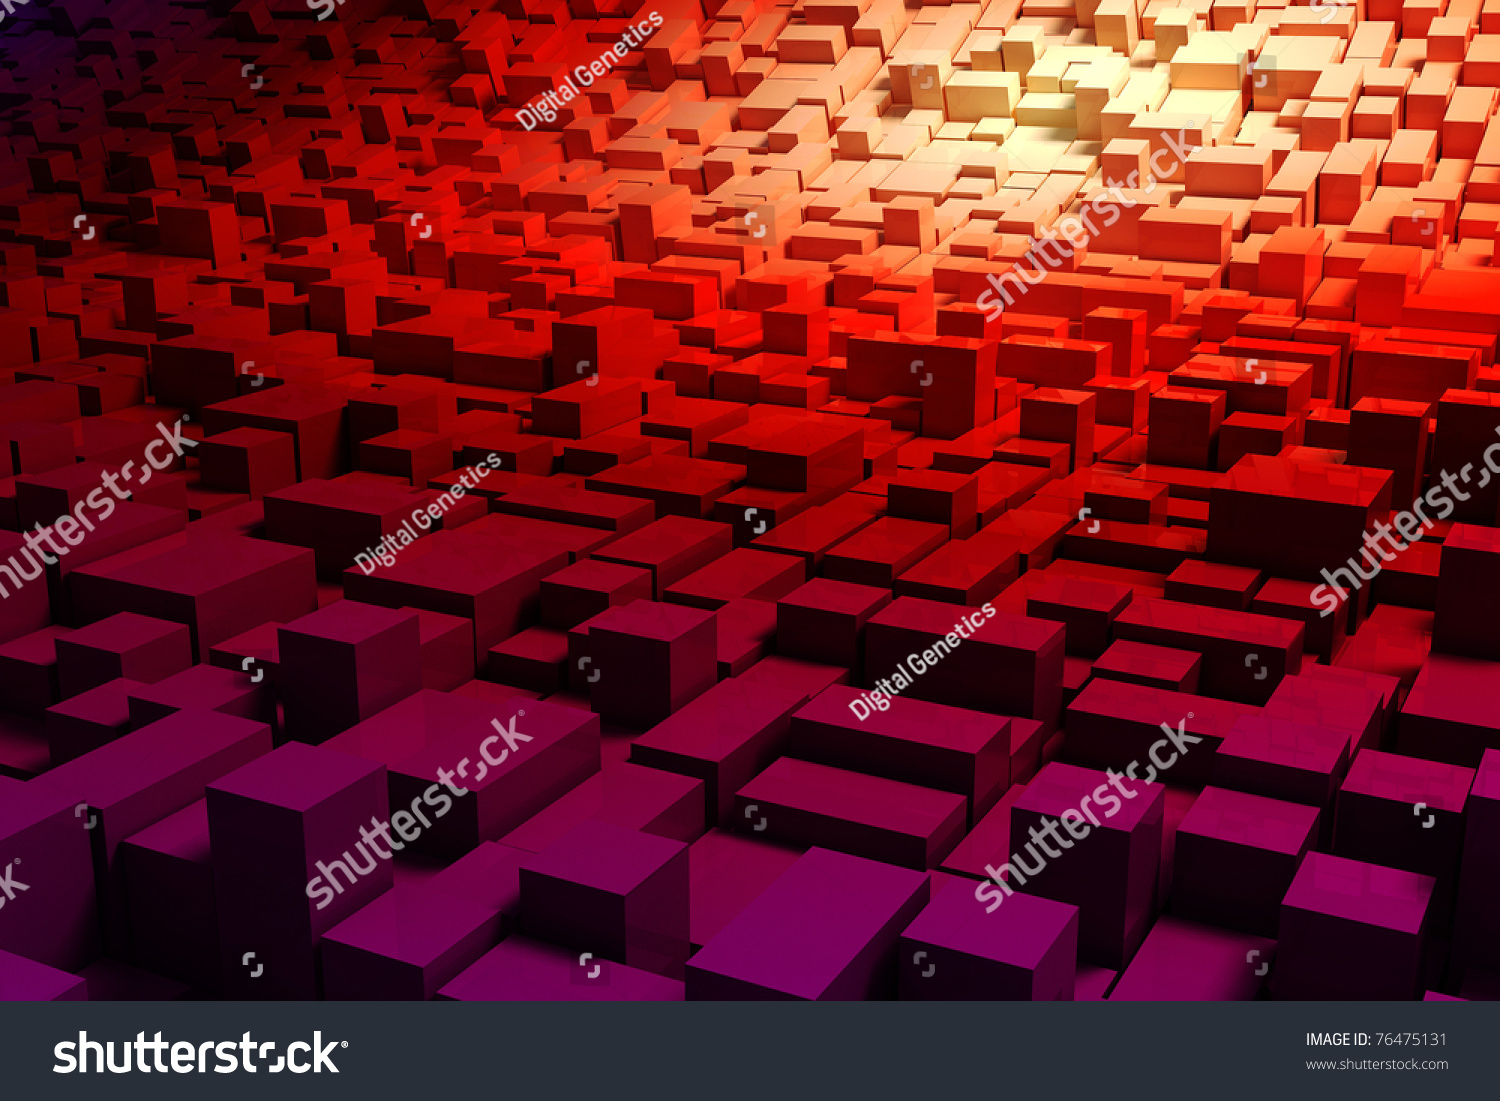 Pics photos 3d colorful abstract background design - 3d Colorful Abstract Background